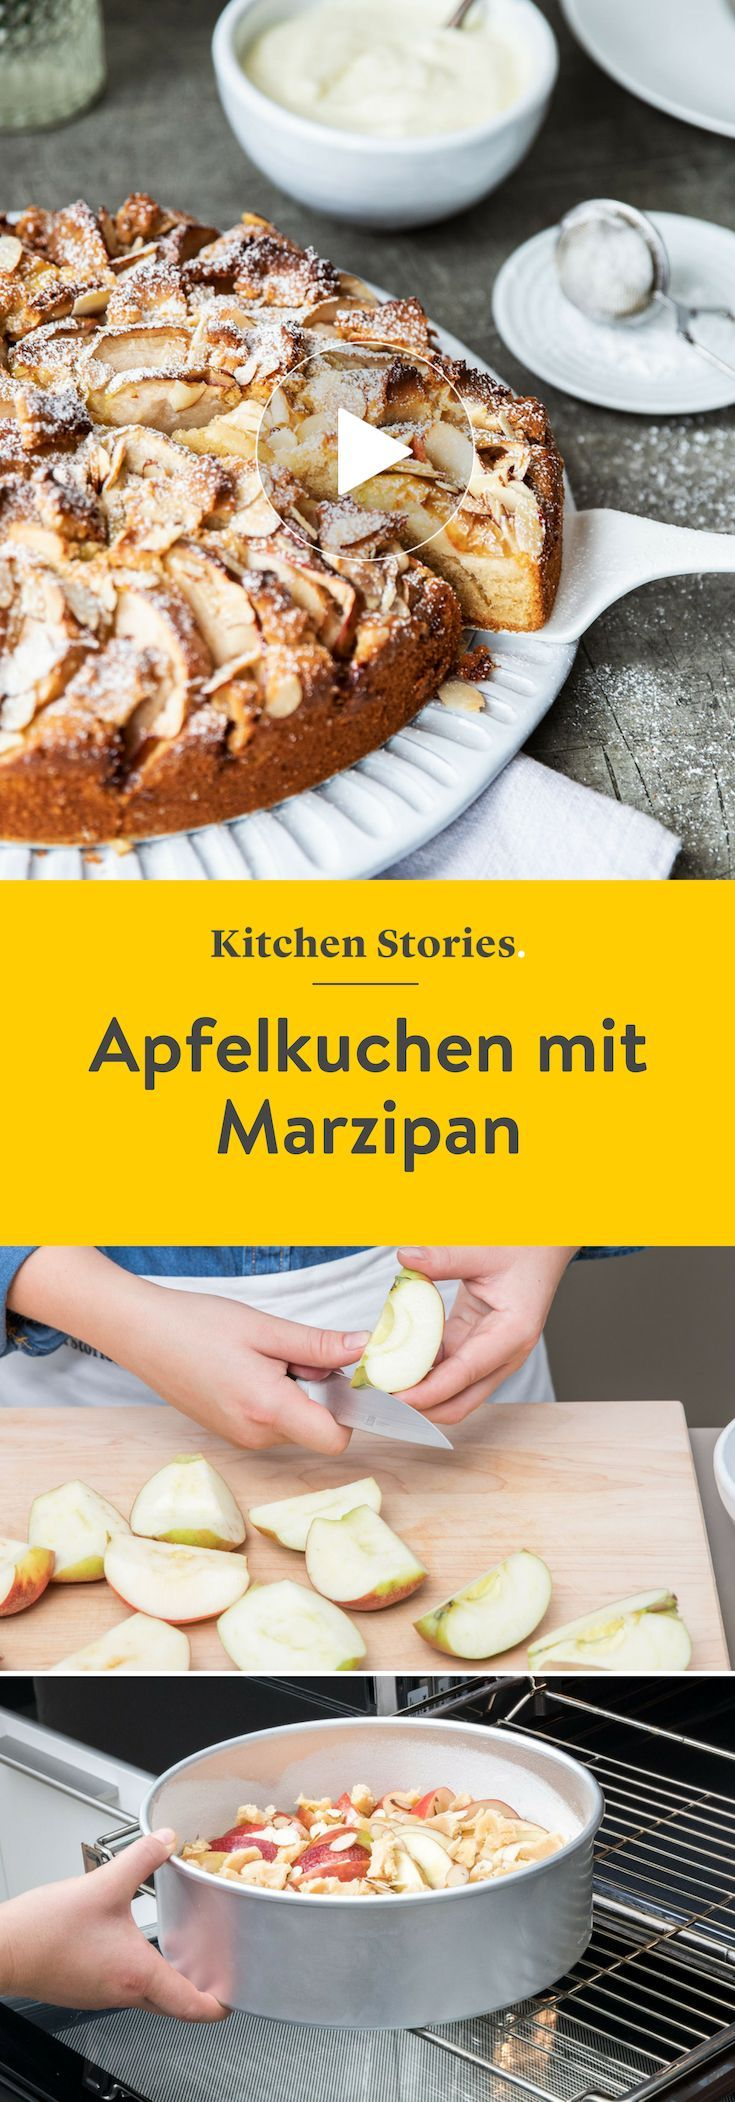 Photo of Apple pie with marzipan Recipe with video | Kitchen stories